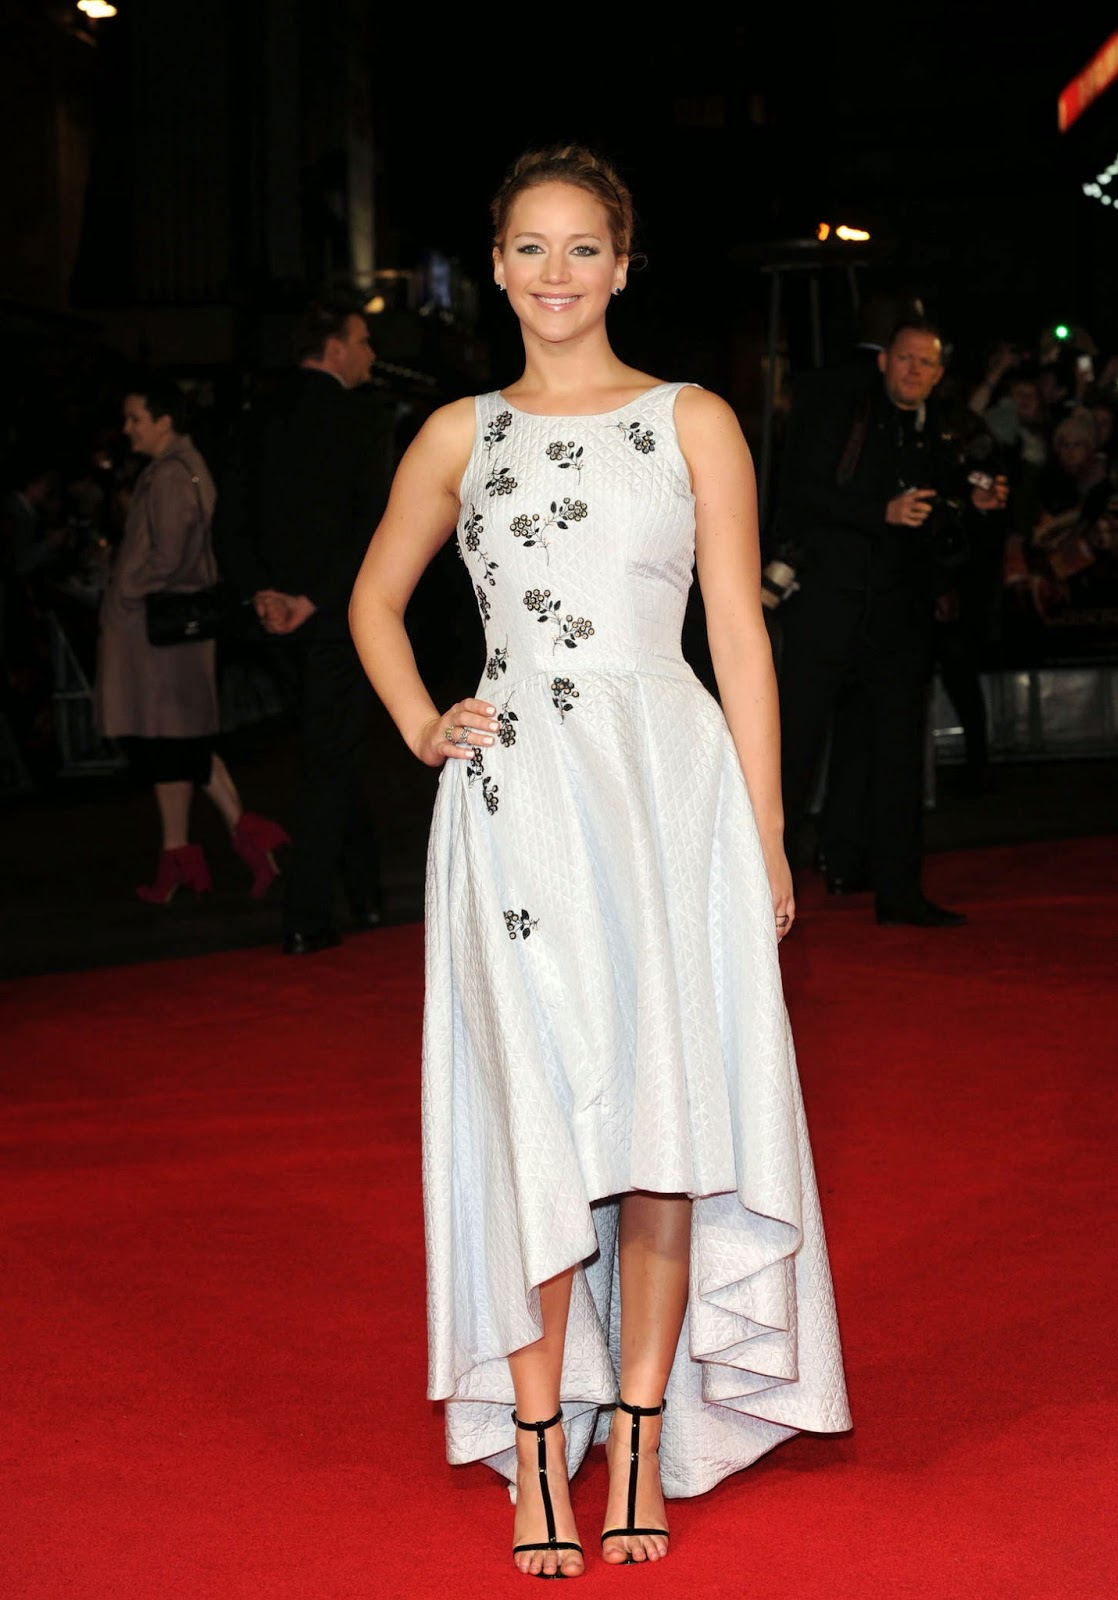 Jennifer Lawrence at Premiere of 'The Hunger Games: Mockingjay Part 1′ in London